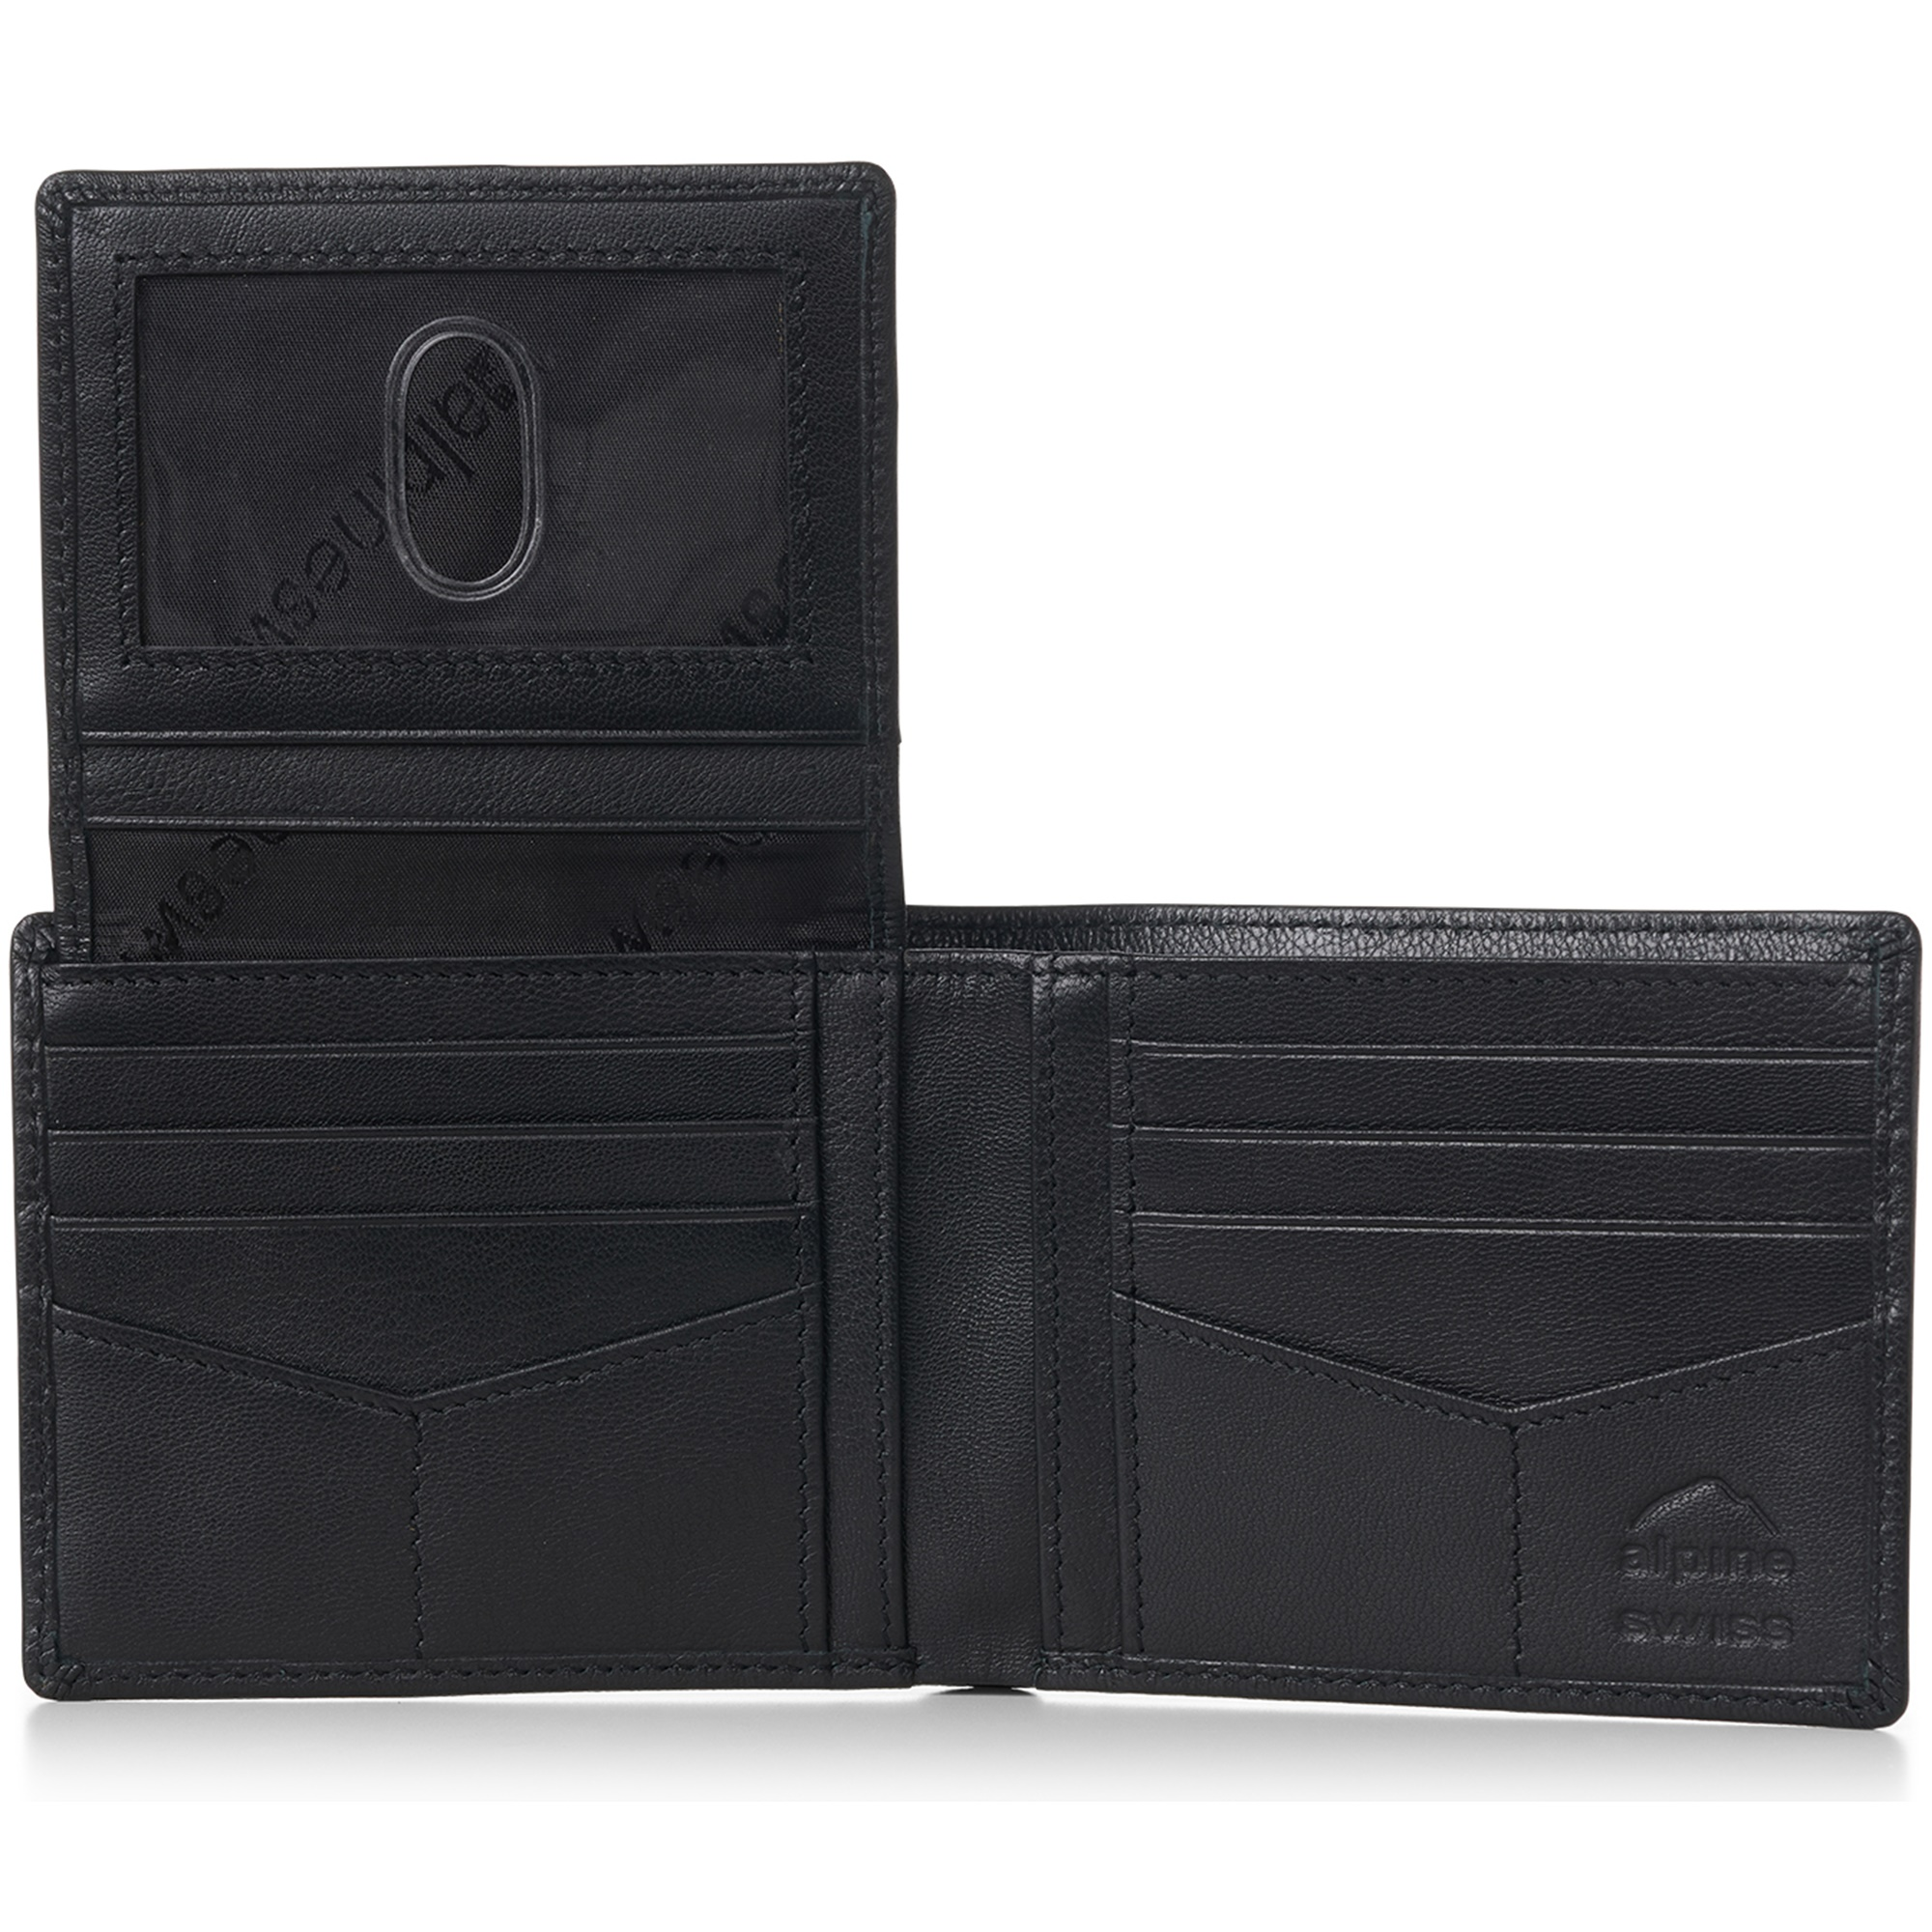 miniature 87 - Alpine-Swiss-RFID-Mens-Wallet-Deluxe-Capacity-Passcase-Bifold-Two-Bill-Sections